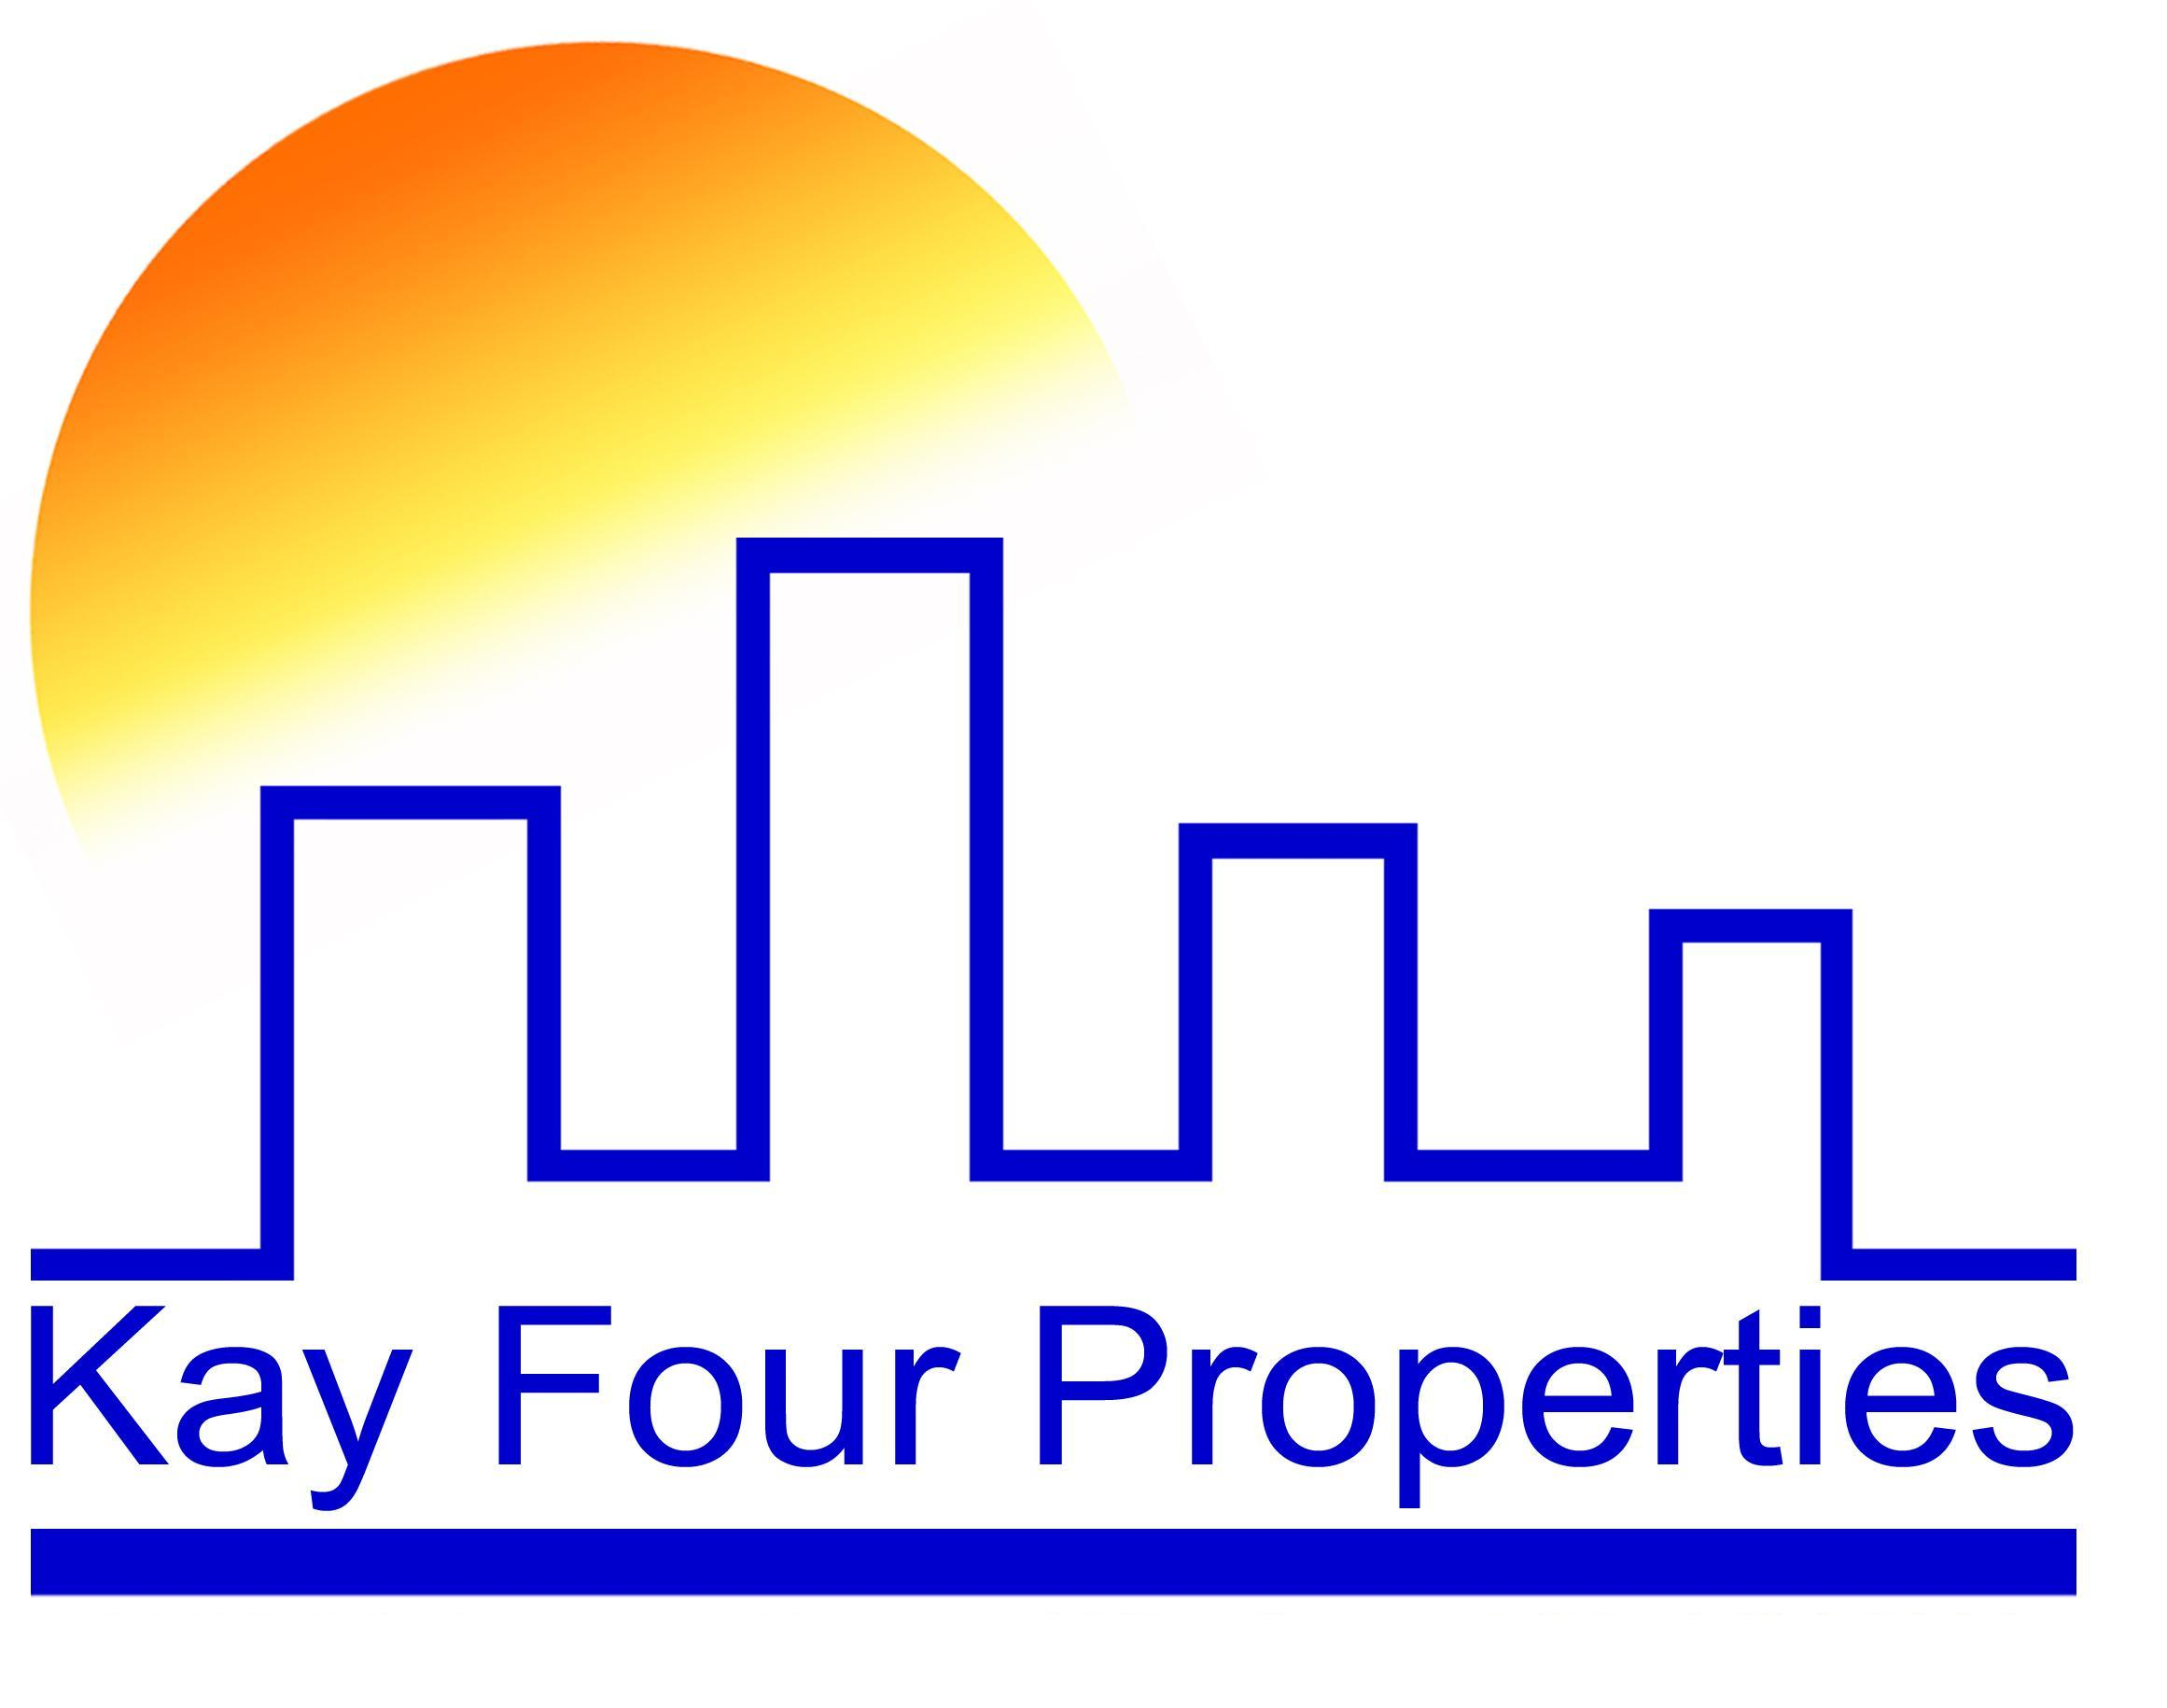 Kay Four Properties Inc.